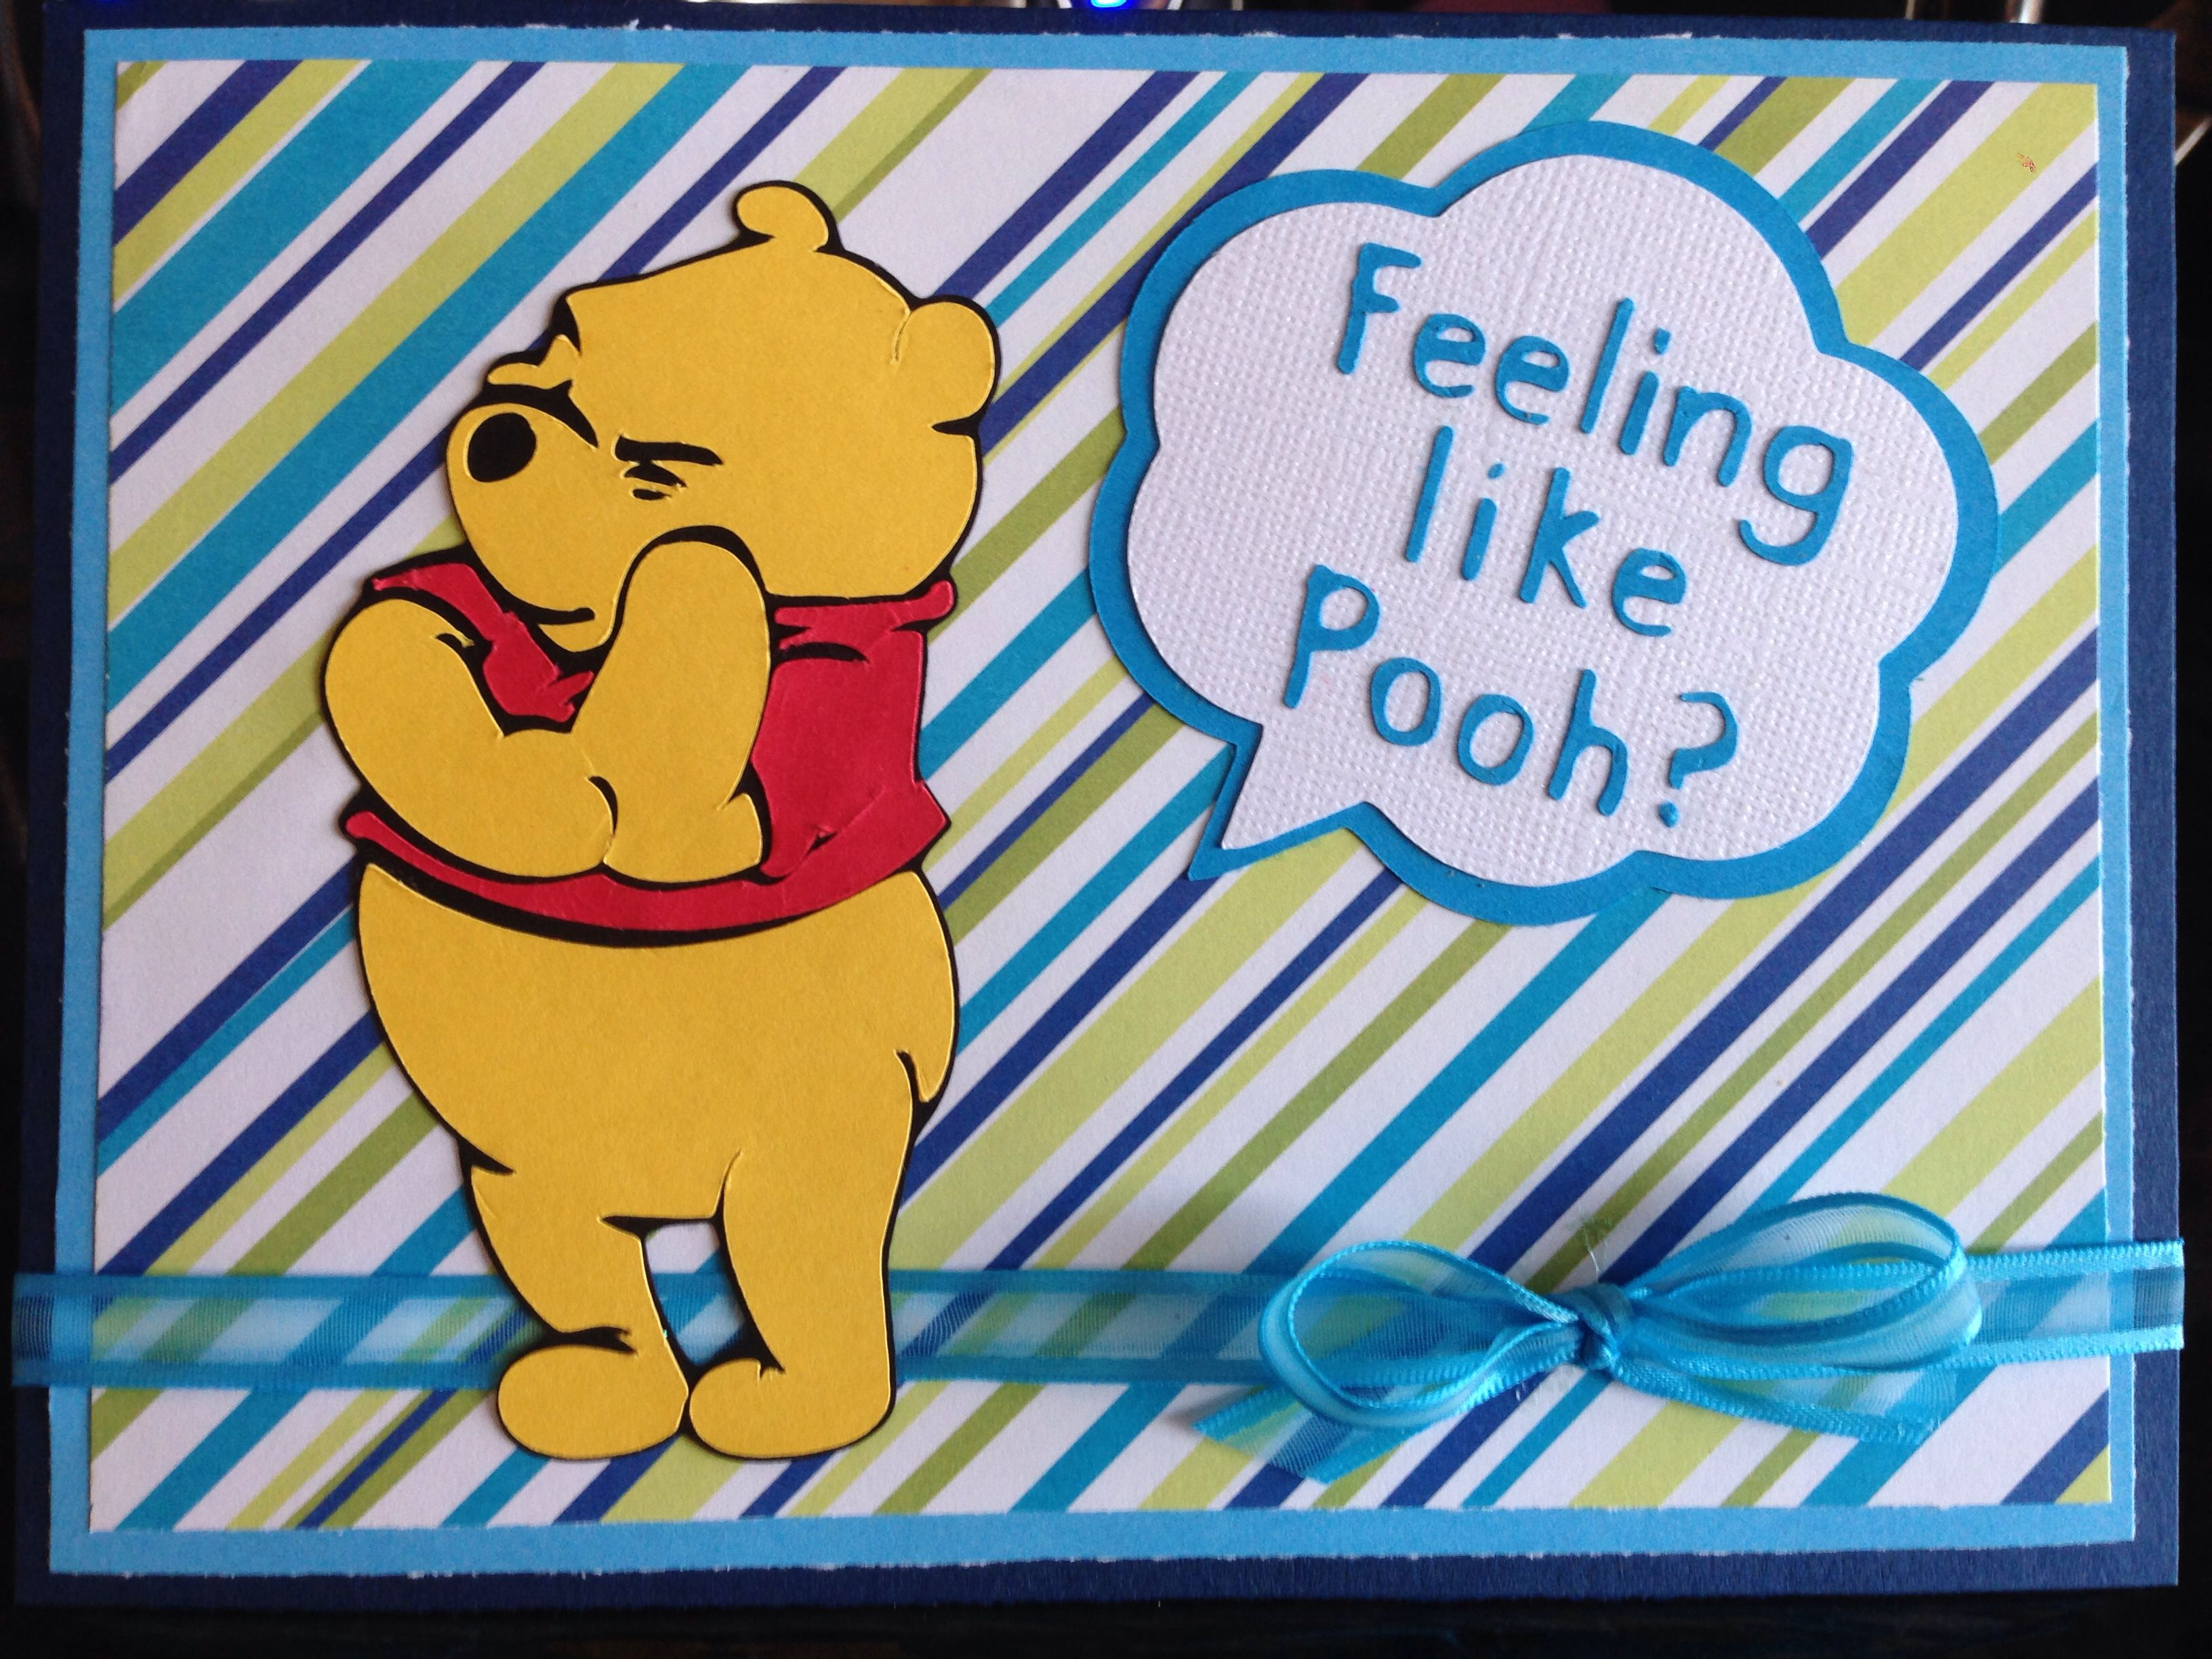 Color your card get well - Get Well Winnie The Pooh Cricut Card